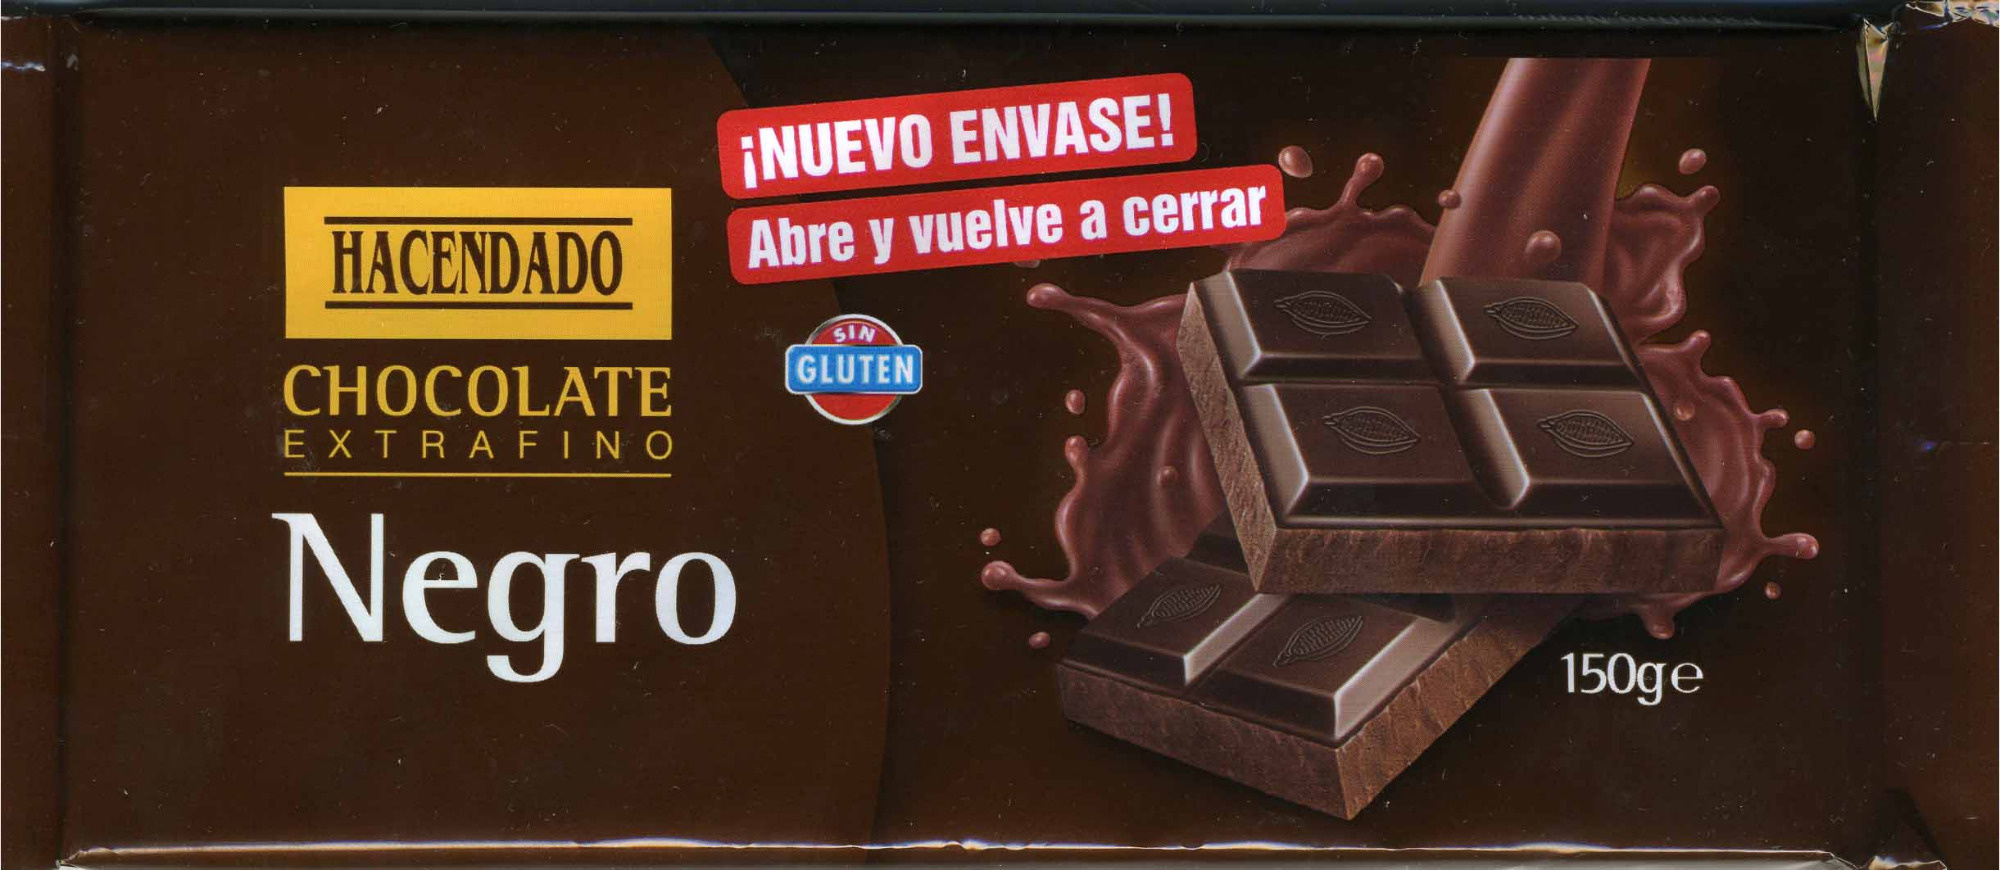 Chocolate extrafino negro - Product - es